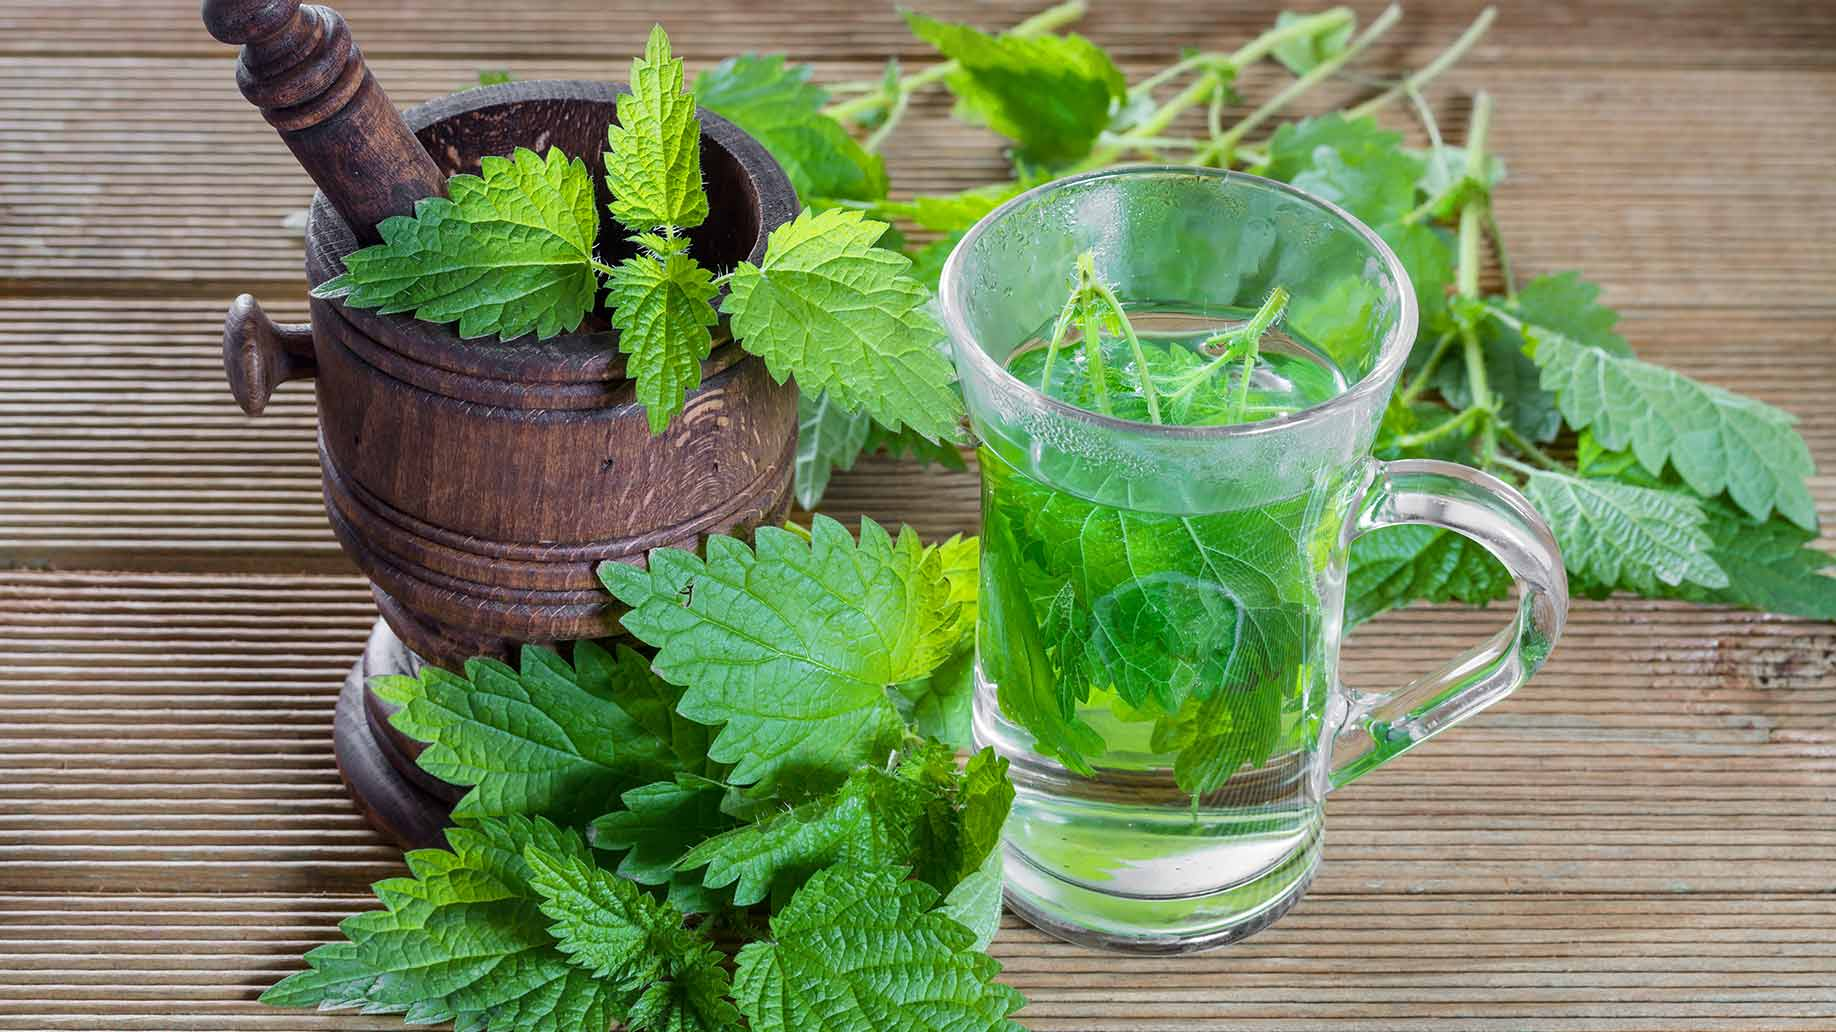 fresh peppermint parsley herbs for bad breath halitosis how to get rid of naturally